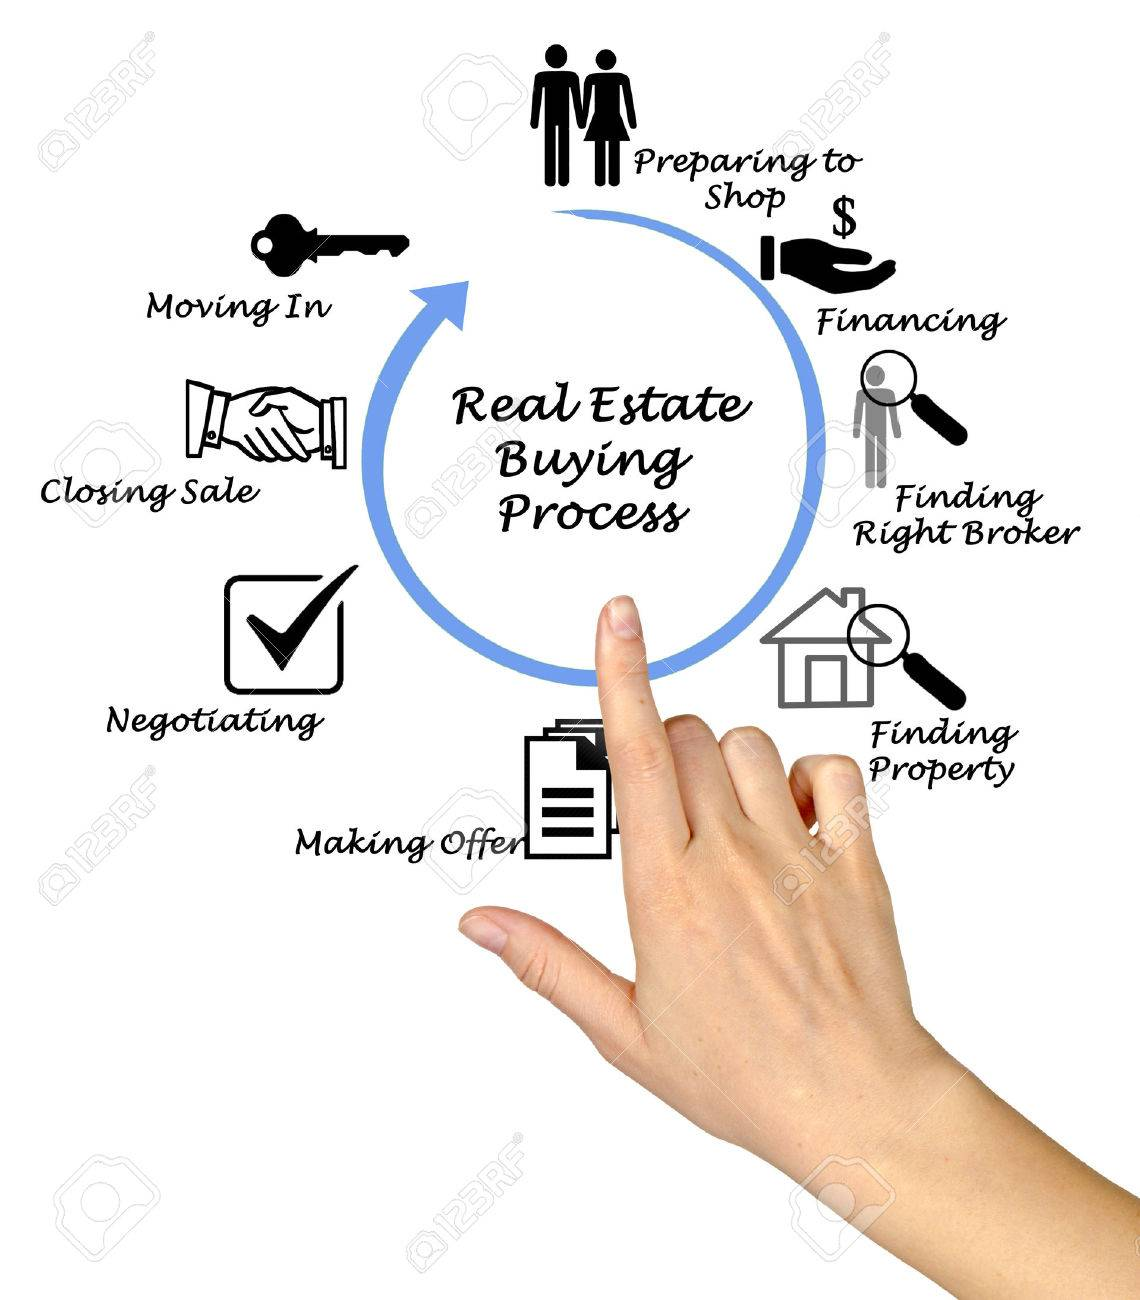 Real Estate Buying Process Stock Photo - 39669210